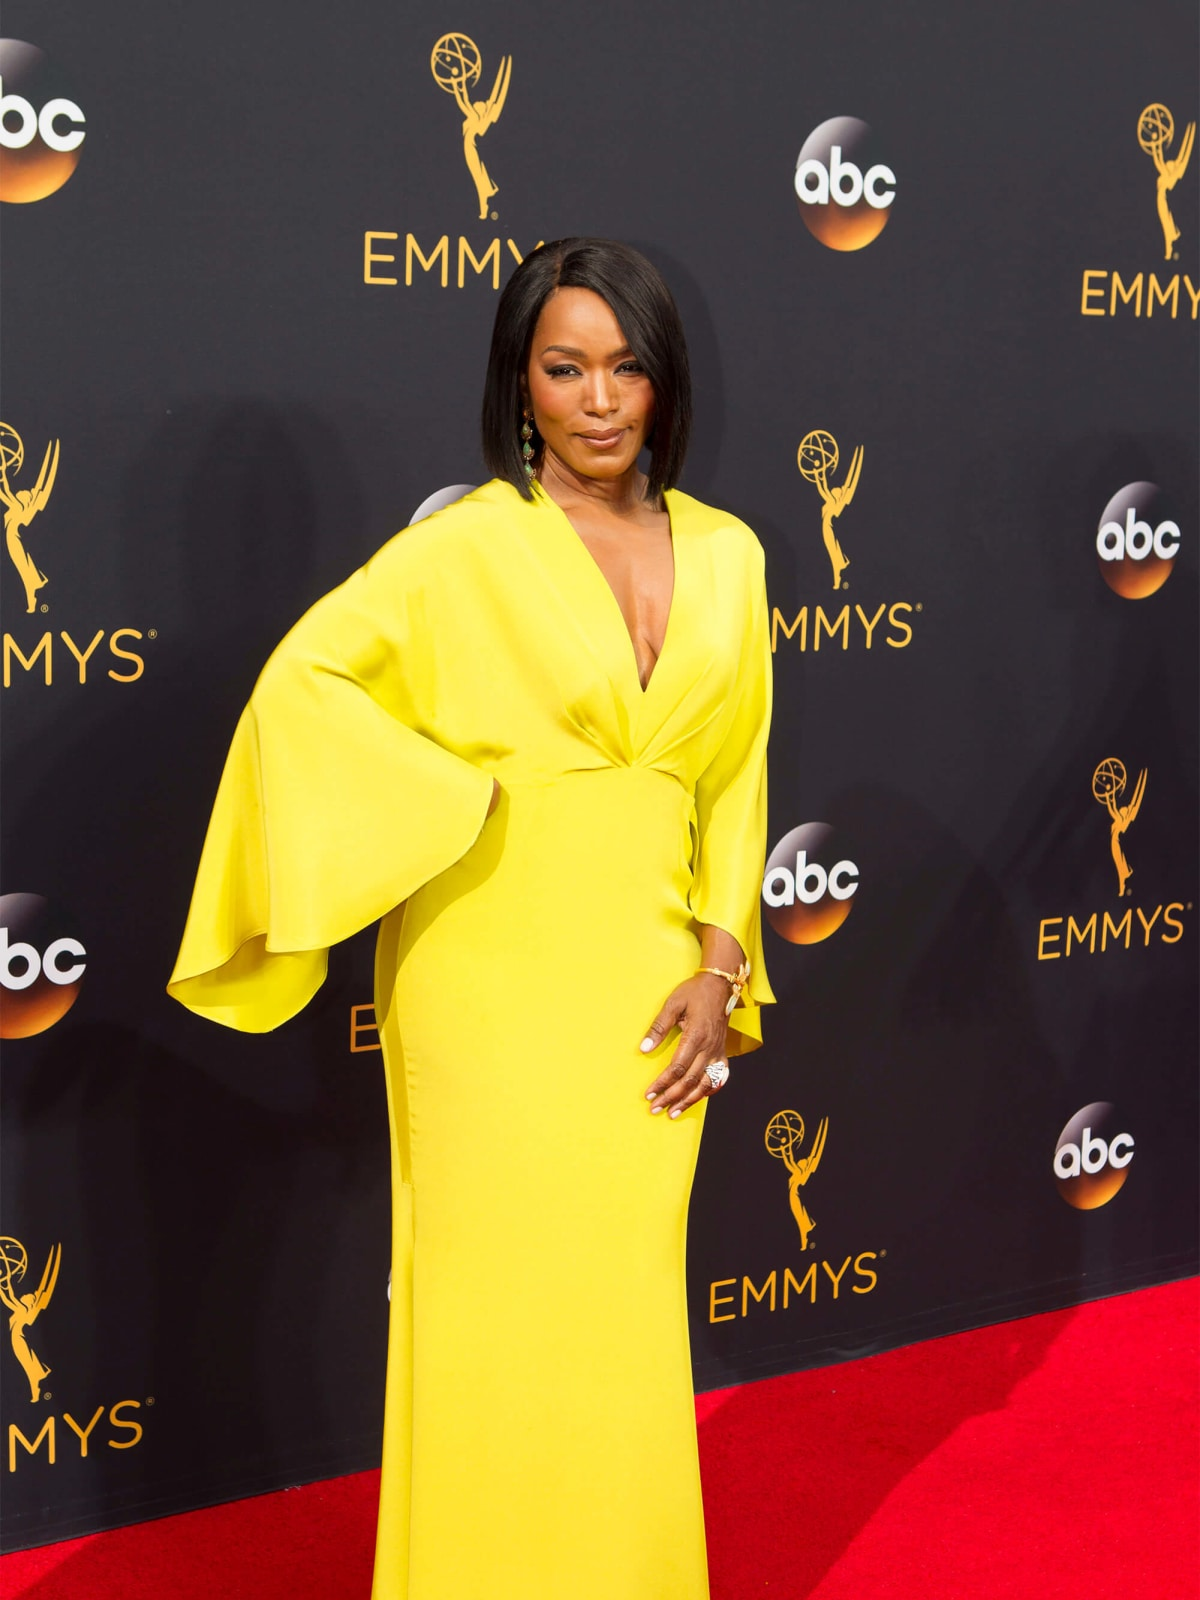 Angela Bassett in Christian Siriano gown at Emmy Awards